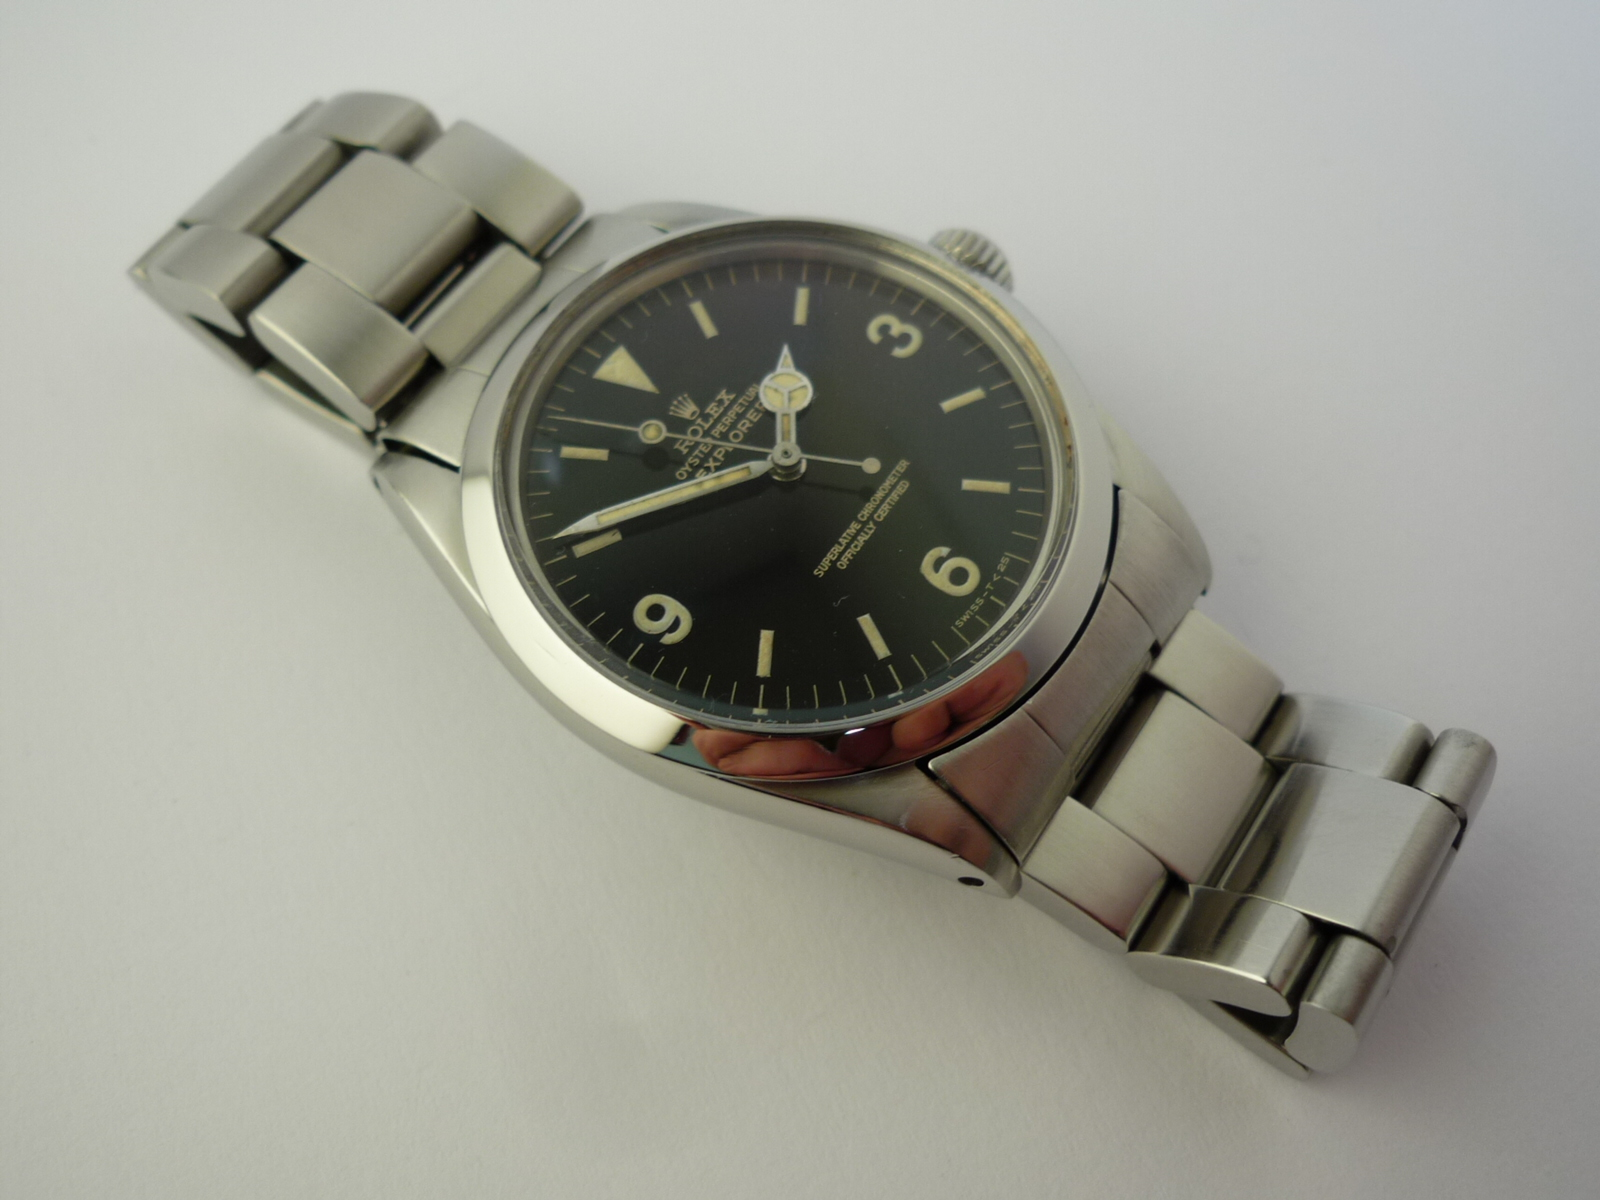 rolex explorer gilt dial watch ref 1016 box and papers  1967